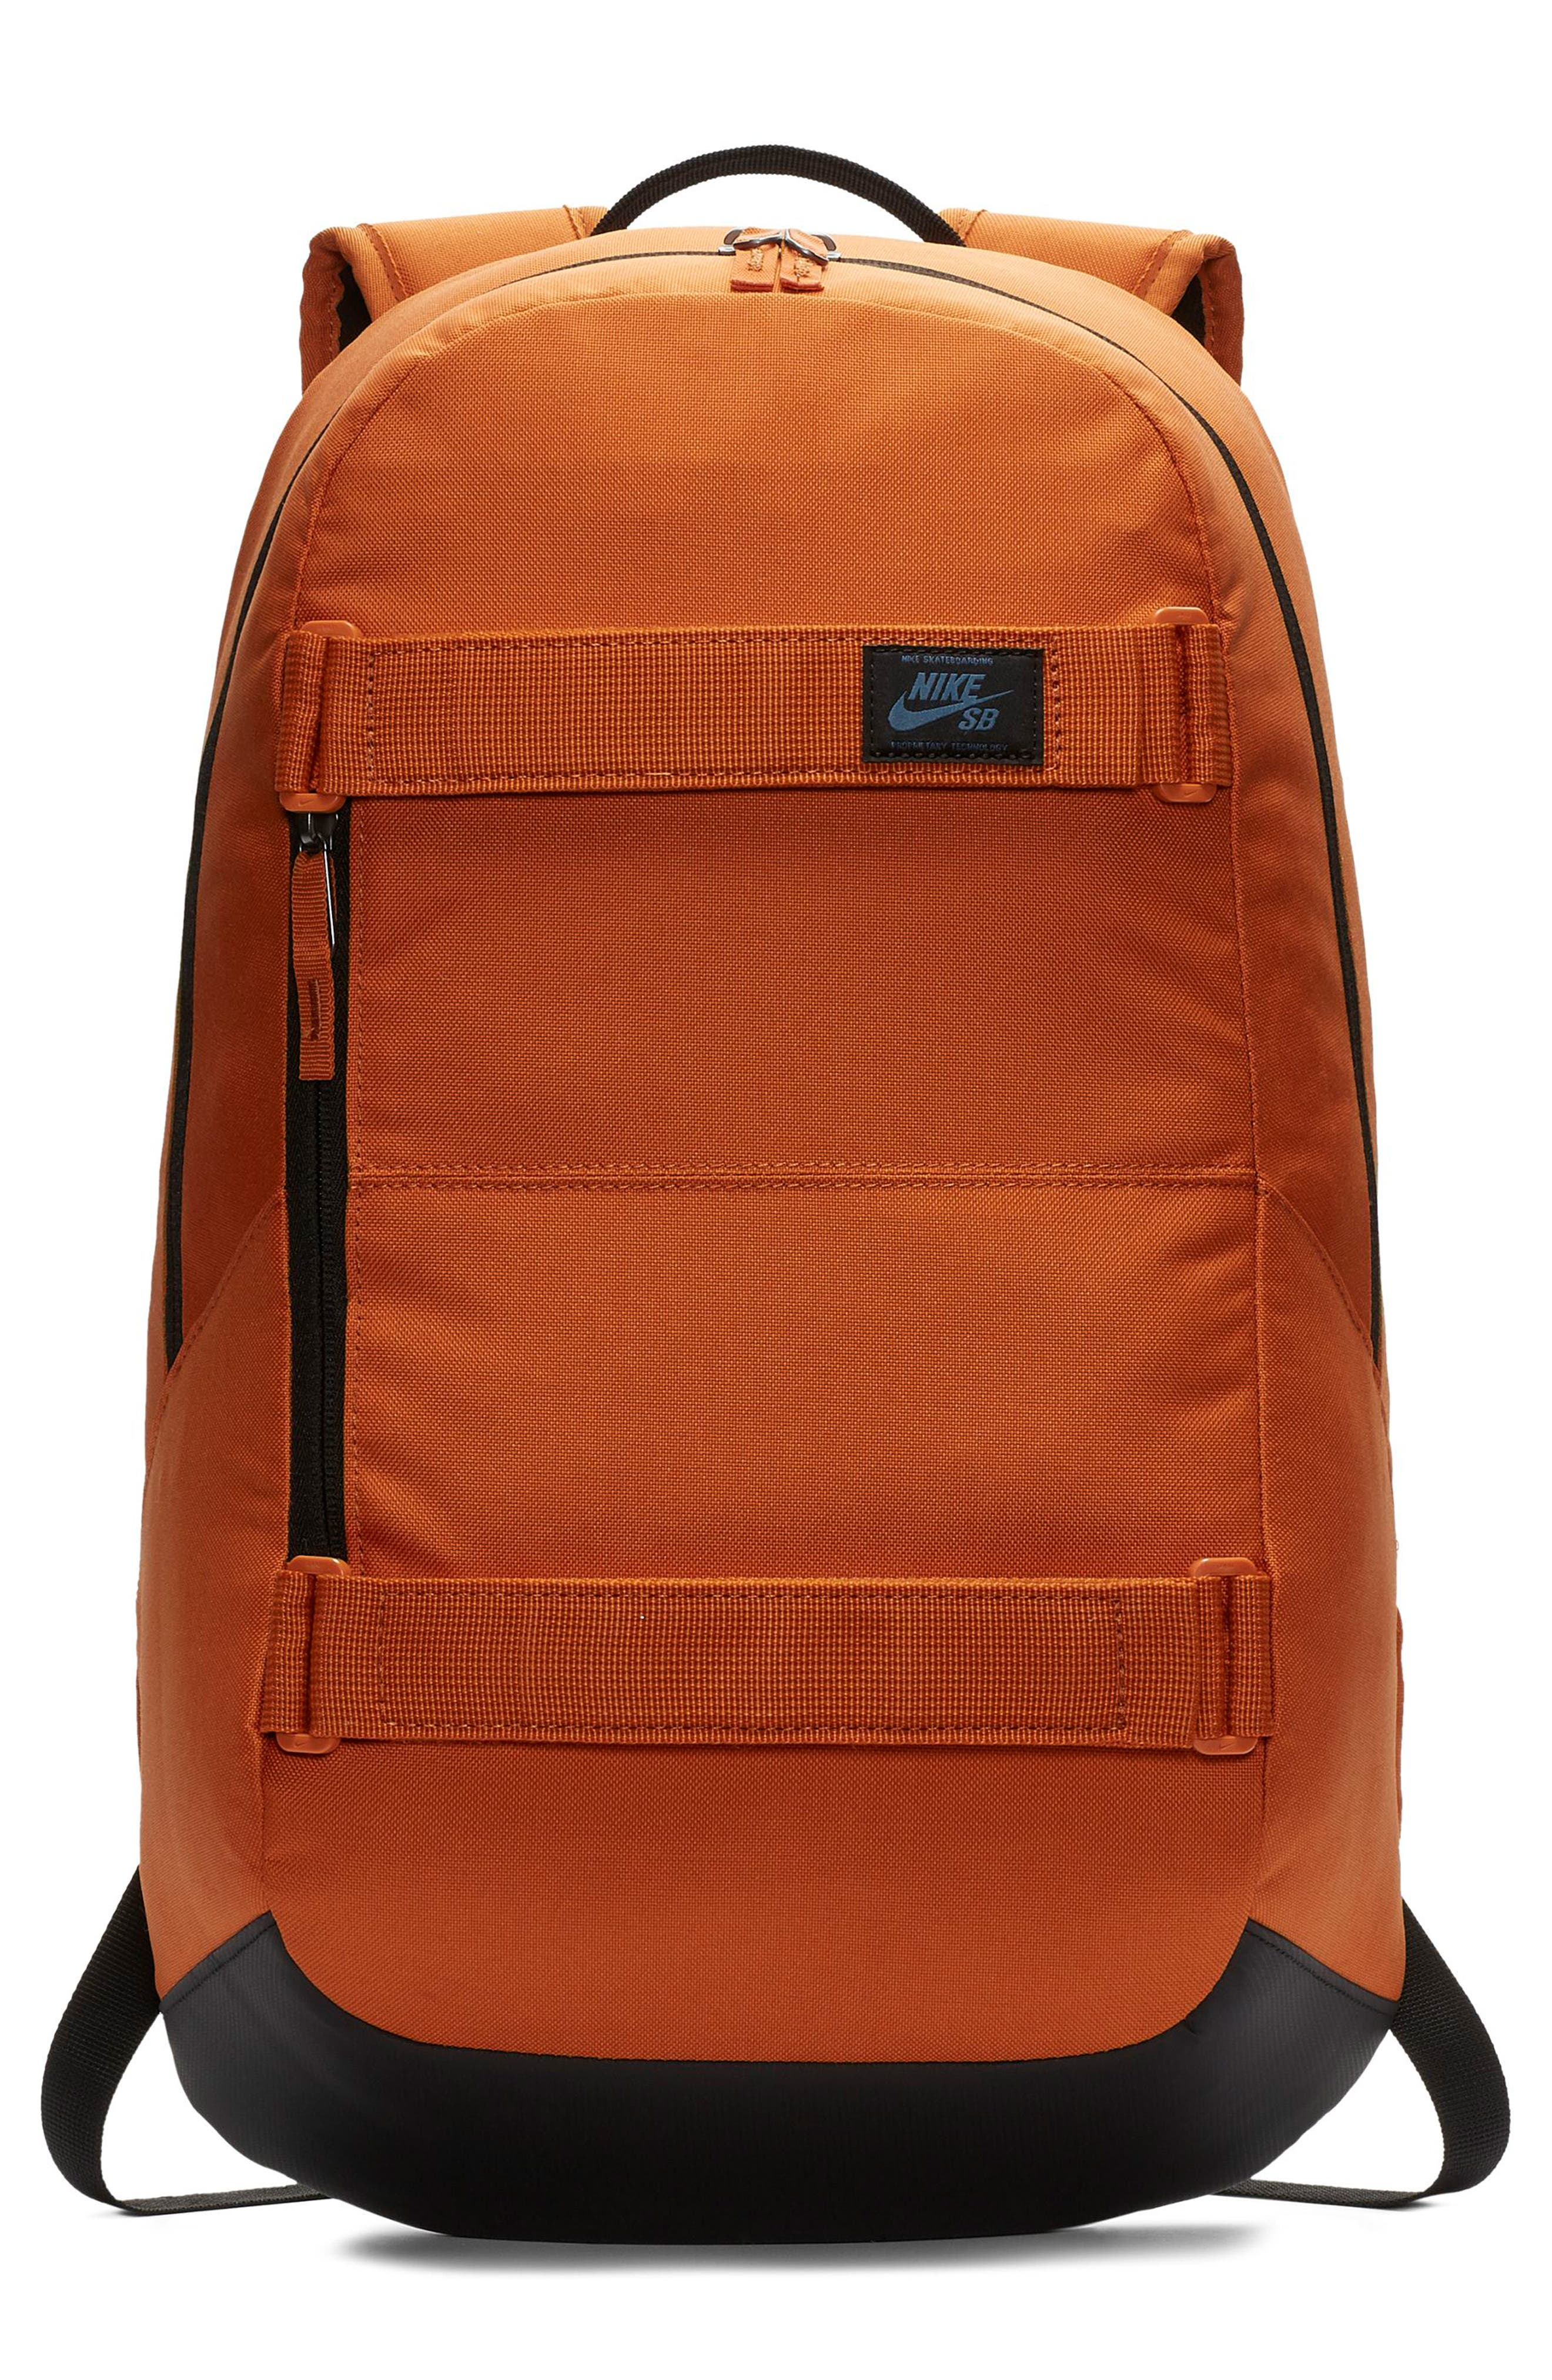 NIKE SB, Courthouse Backpack, Main thumbnail 1, color, CINDER ORANGE